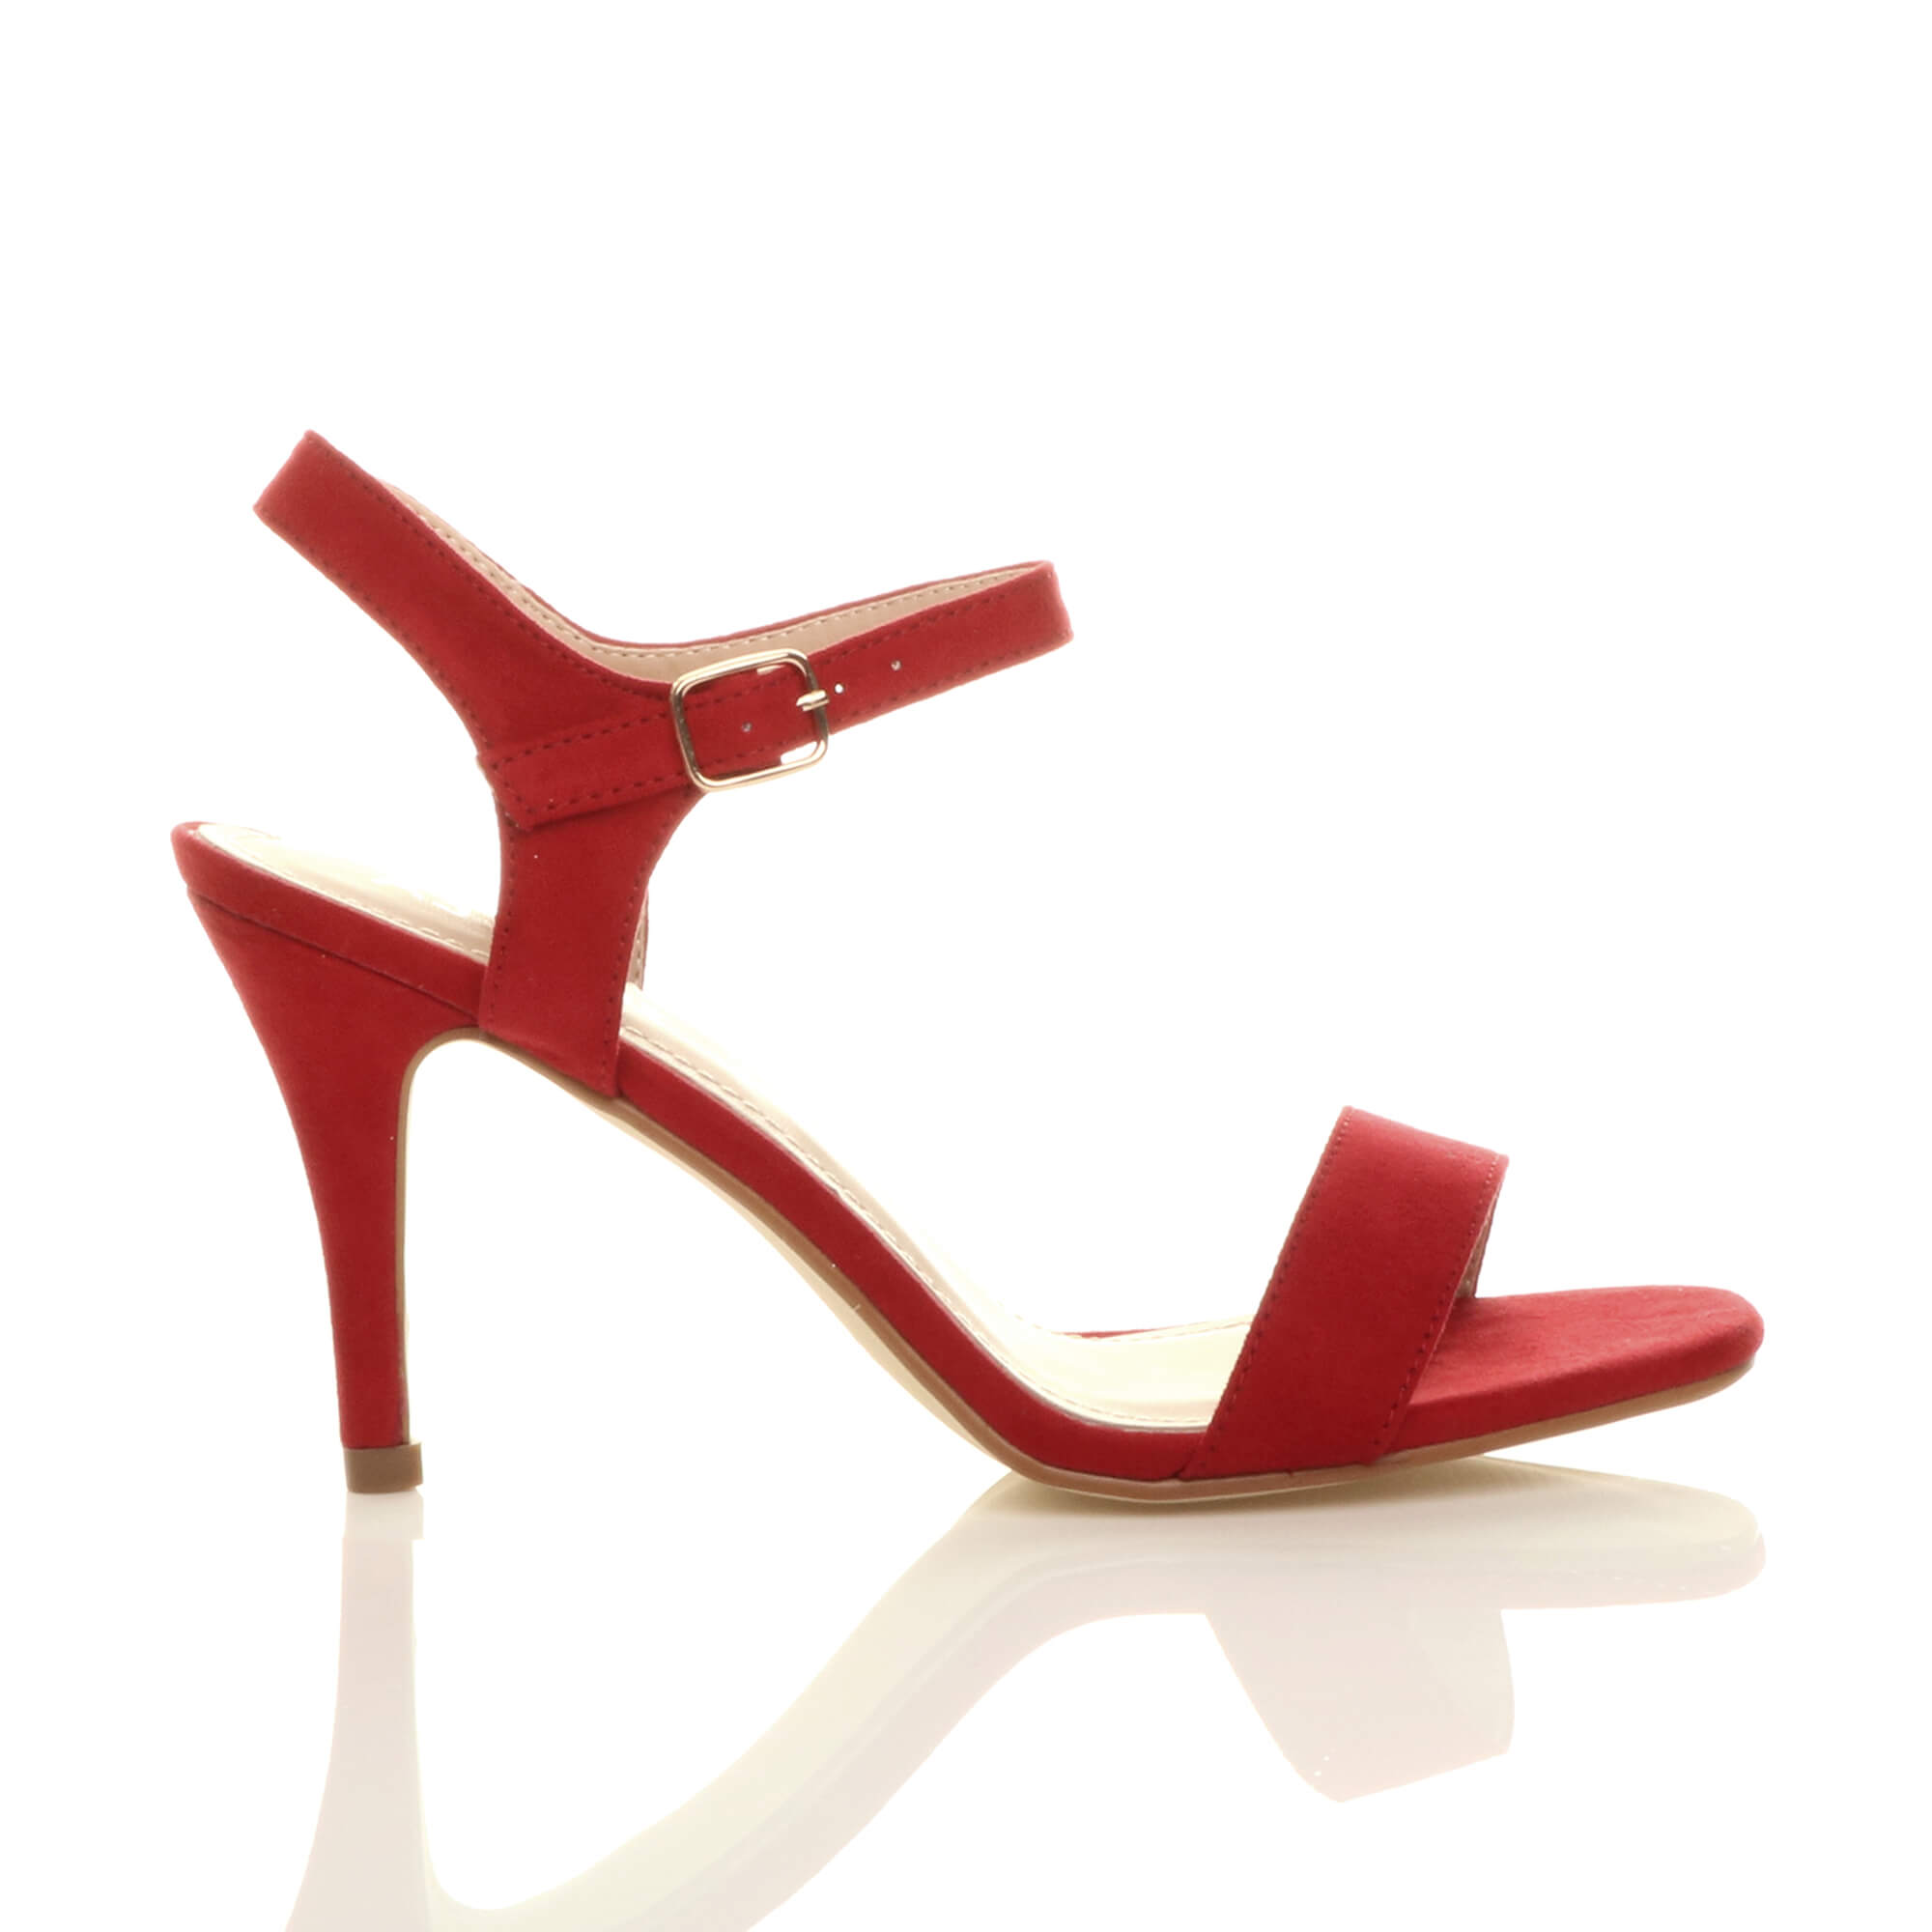 WOMENS-LADIES-HIGH-HEEL-BUCKLE-STRAPPY-BASIC-BARELY-THERE-SANDALS-SHOES-SIZE thumbnail 115